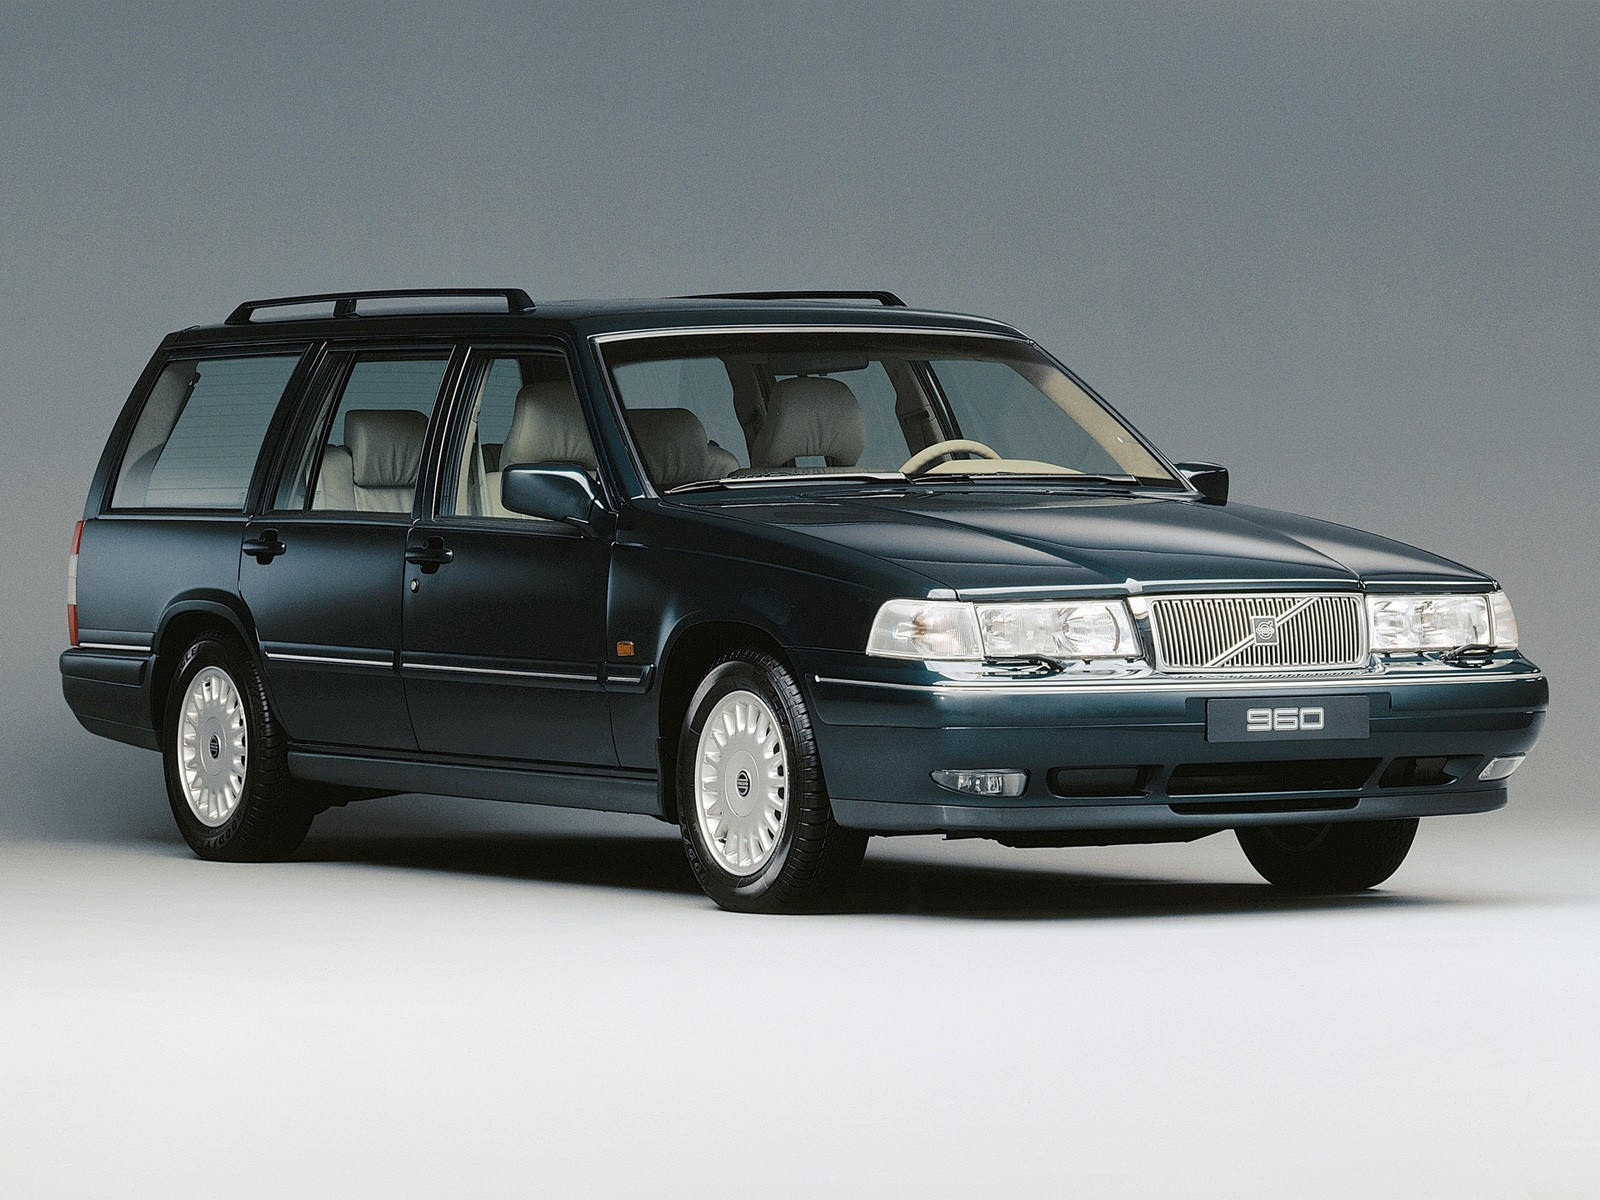 VOLVO 960 Estate specs - 1994, 1995, 1996, 1997 - autoevolution